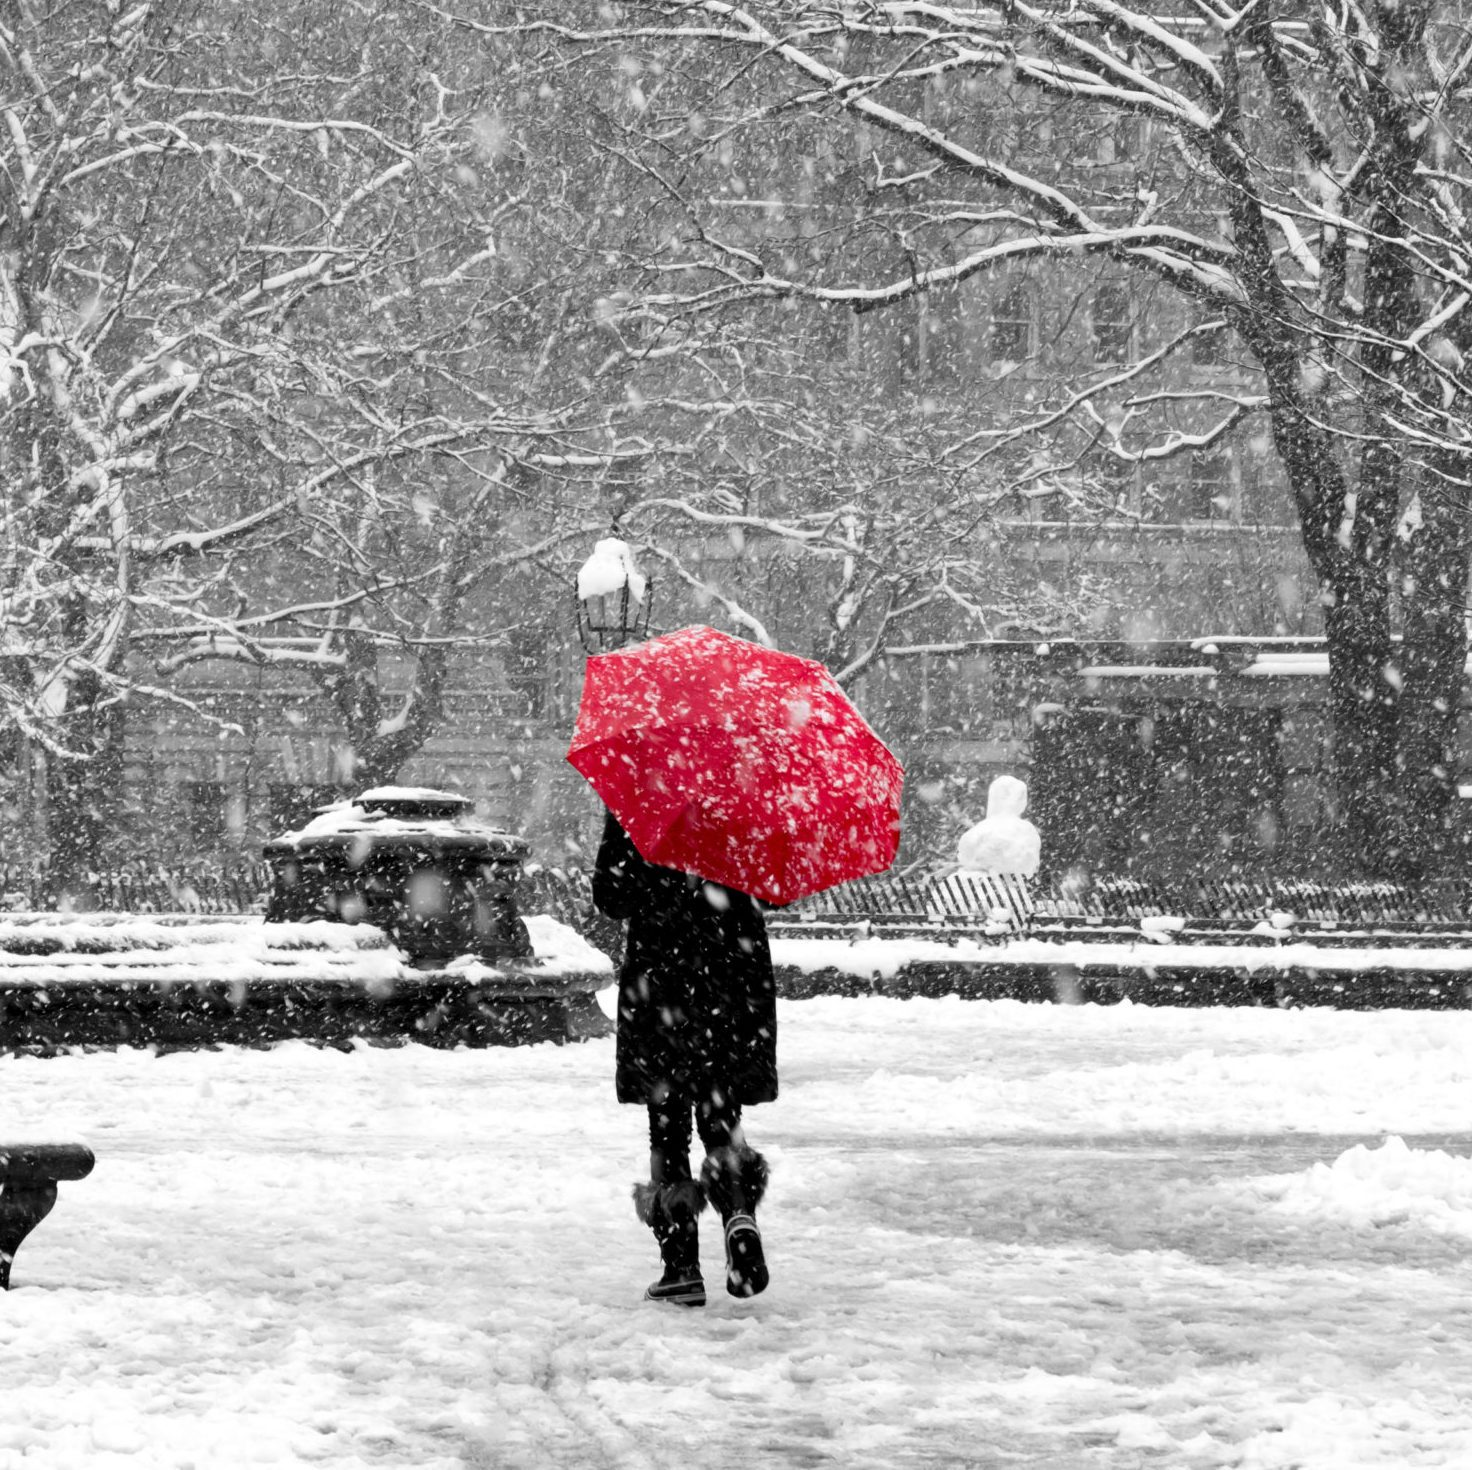 Woman with red umbrella in black and white snowstorm, New York City